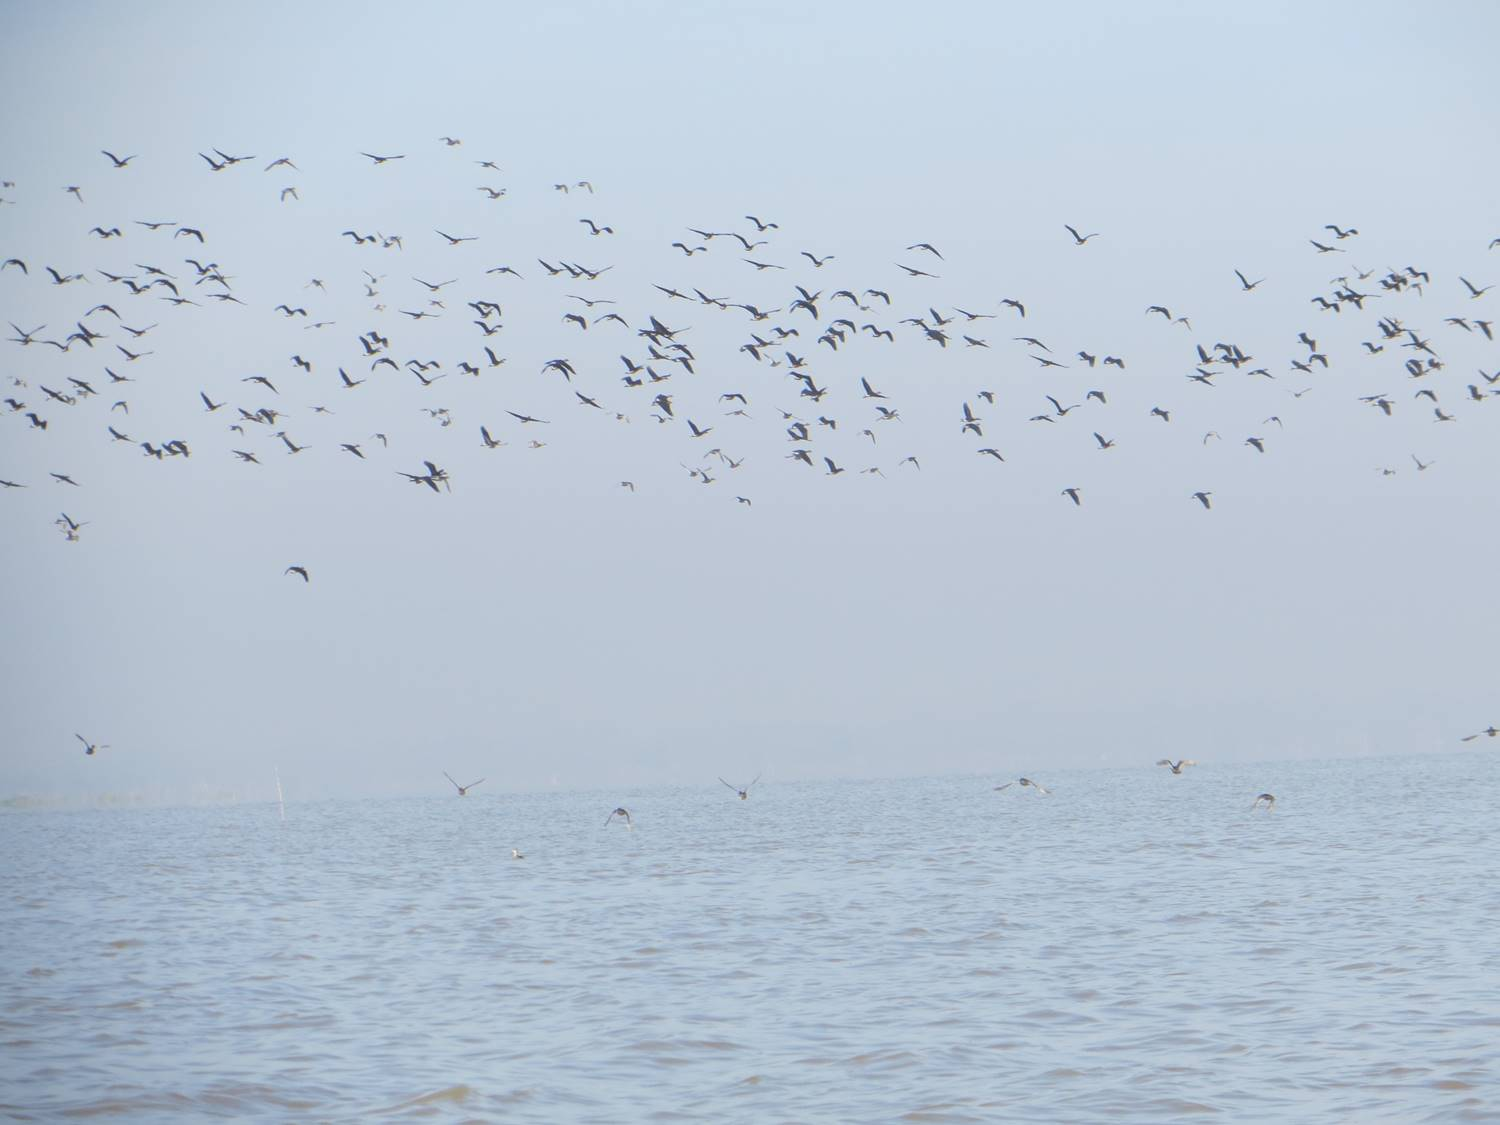 Waterbirds at Moeyungyi